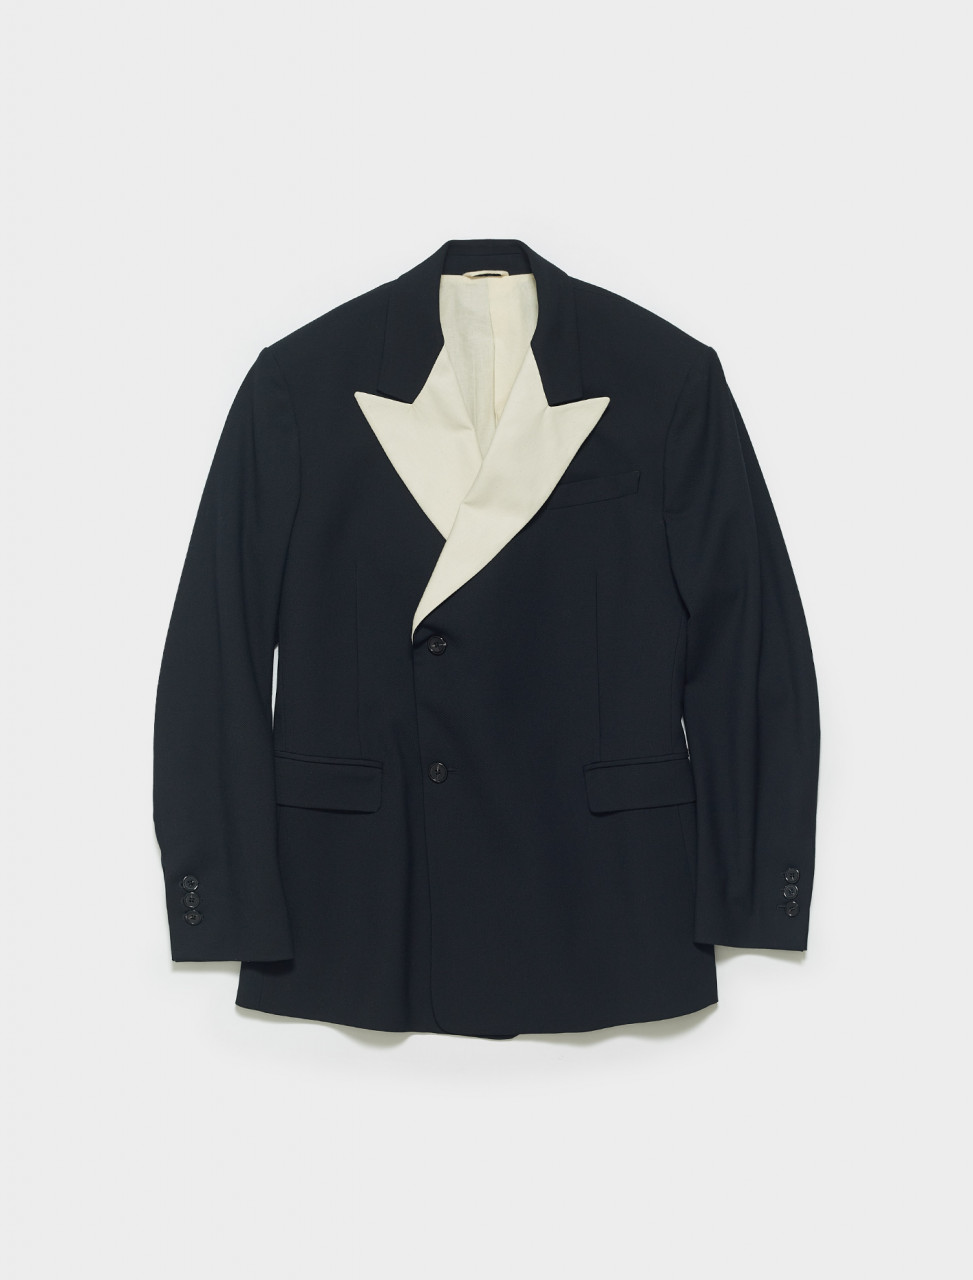 201-527-25020-09913 RAF SIMONS DOUBLE BREASTED BLAZER WITH SHARP LAPEL